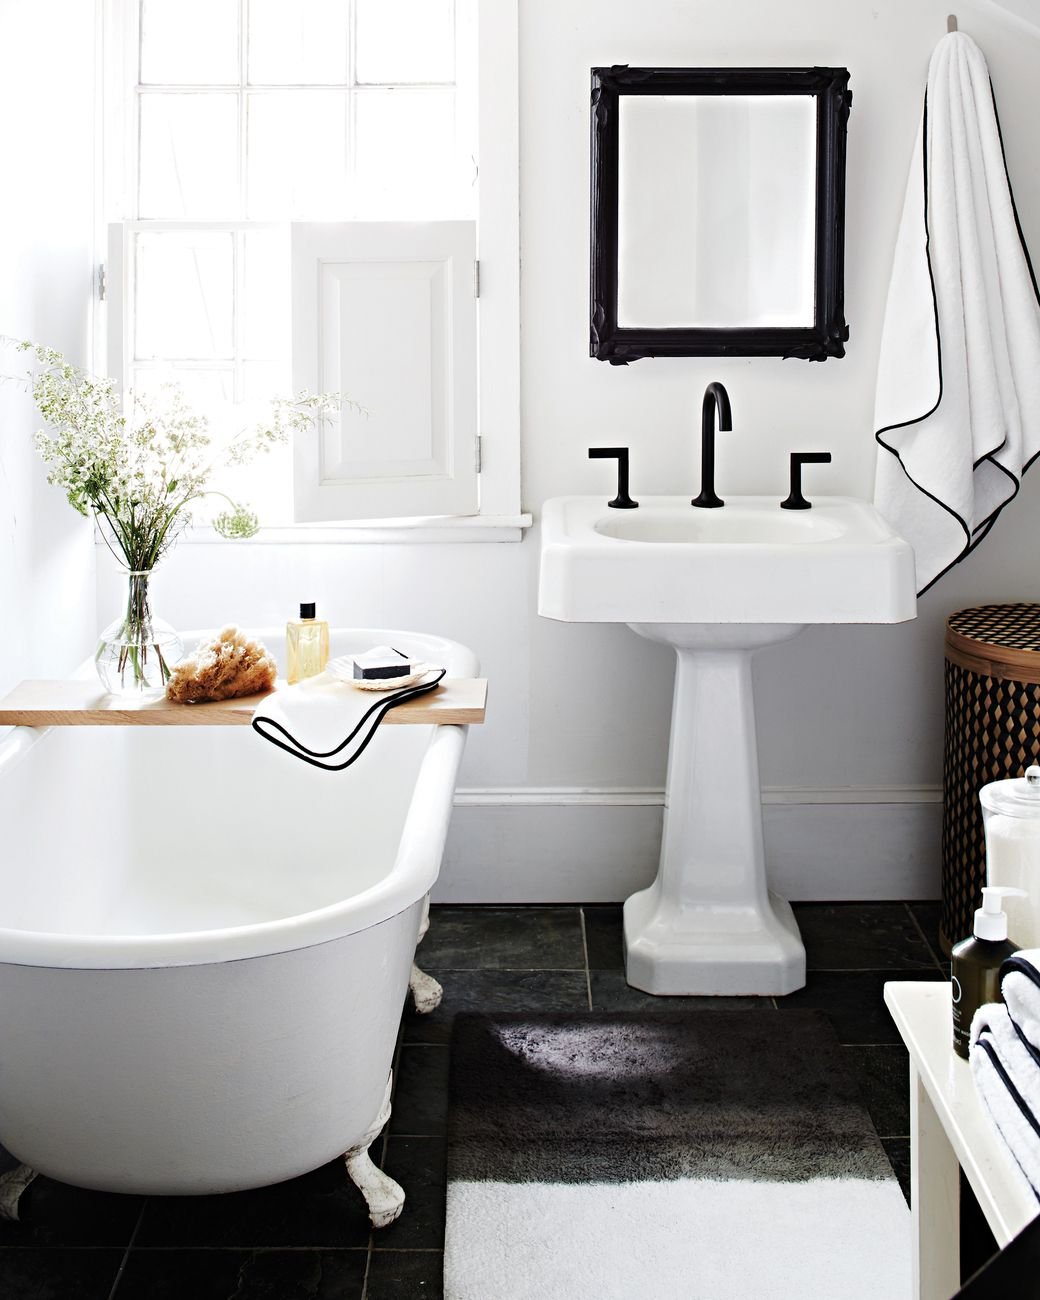 Flat Paint Bathroom: The Art Of Decorating With Black And White